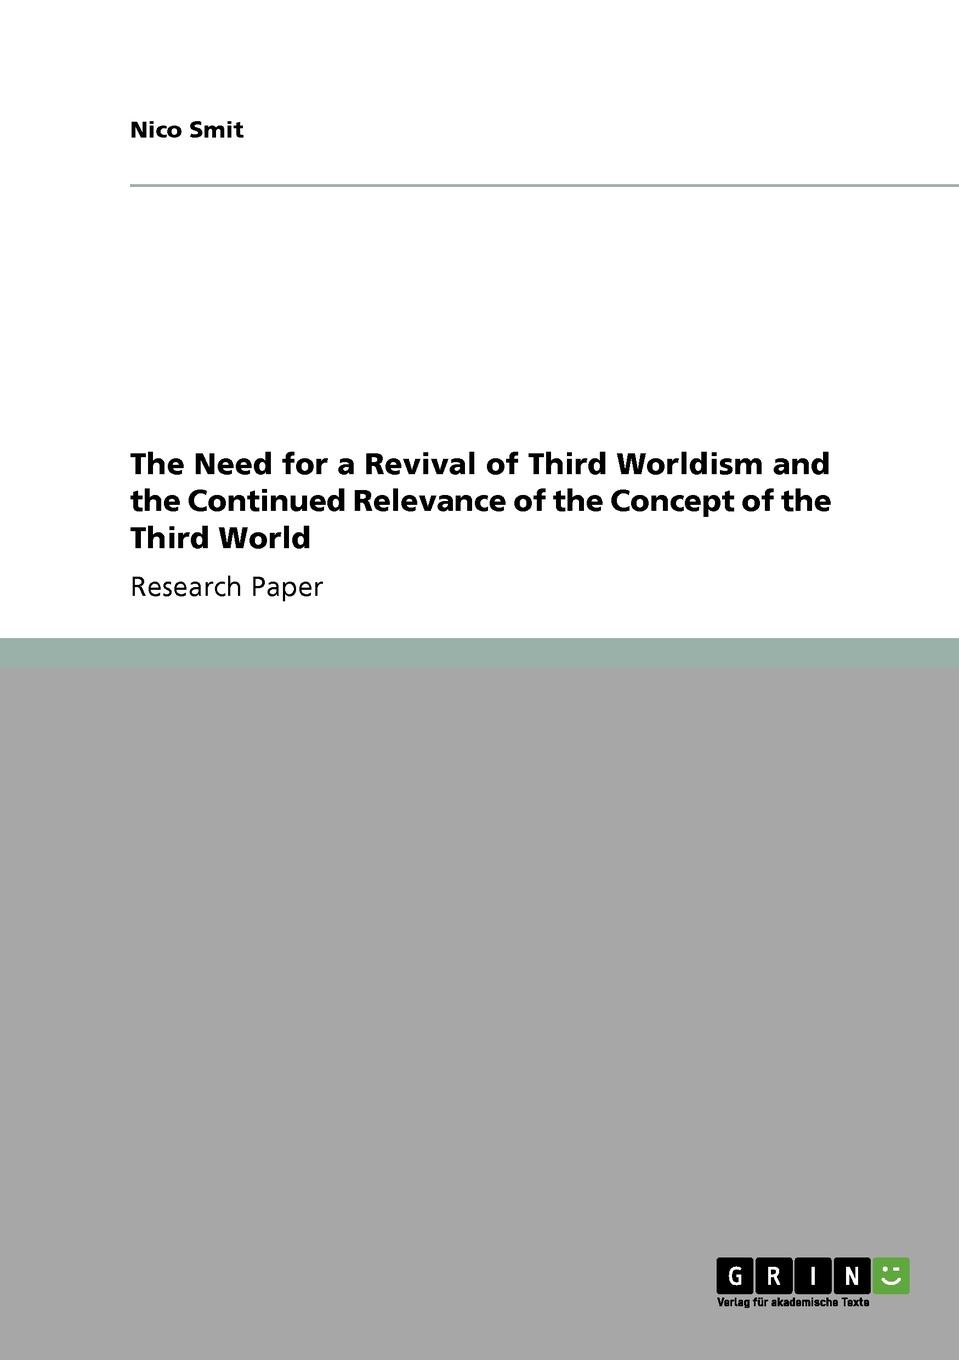 Nico Smit The Need for a Revival of Third Worldism and the Continued Relevance of the Concept of the Third World dave rankin third world war